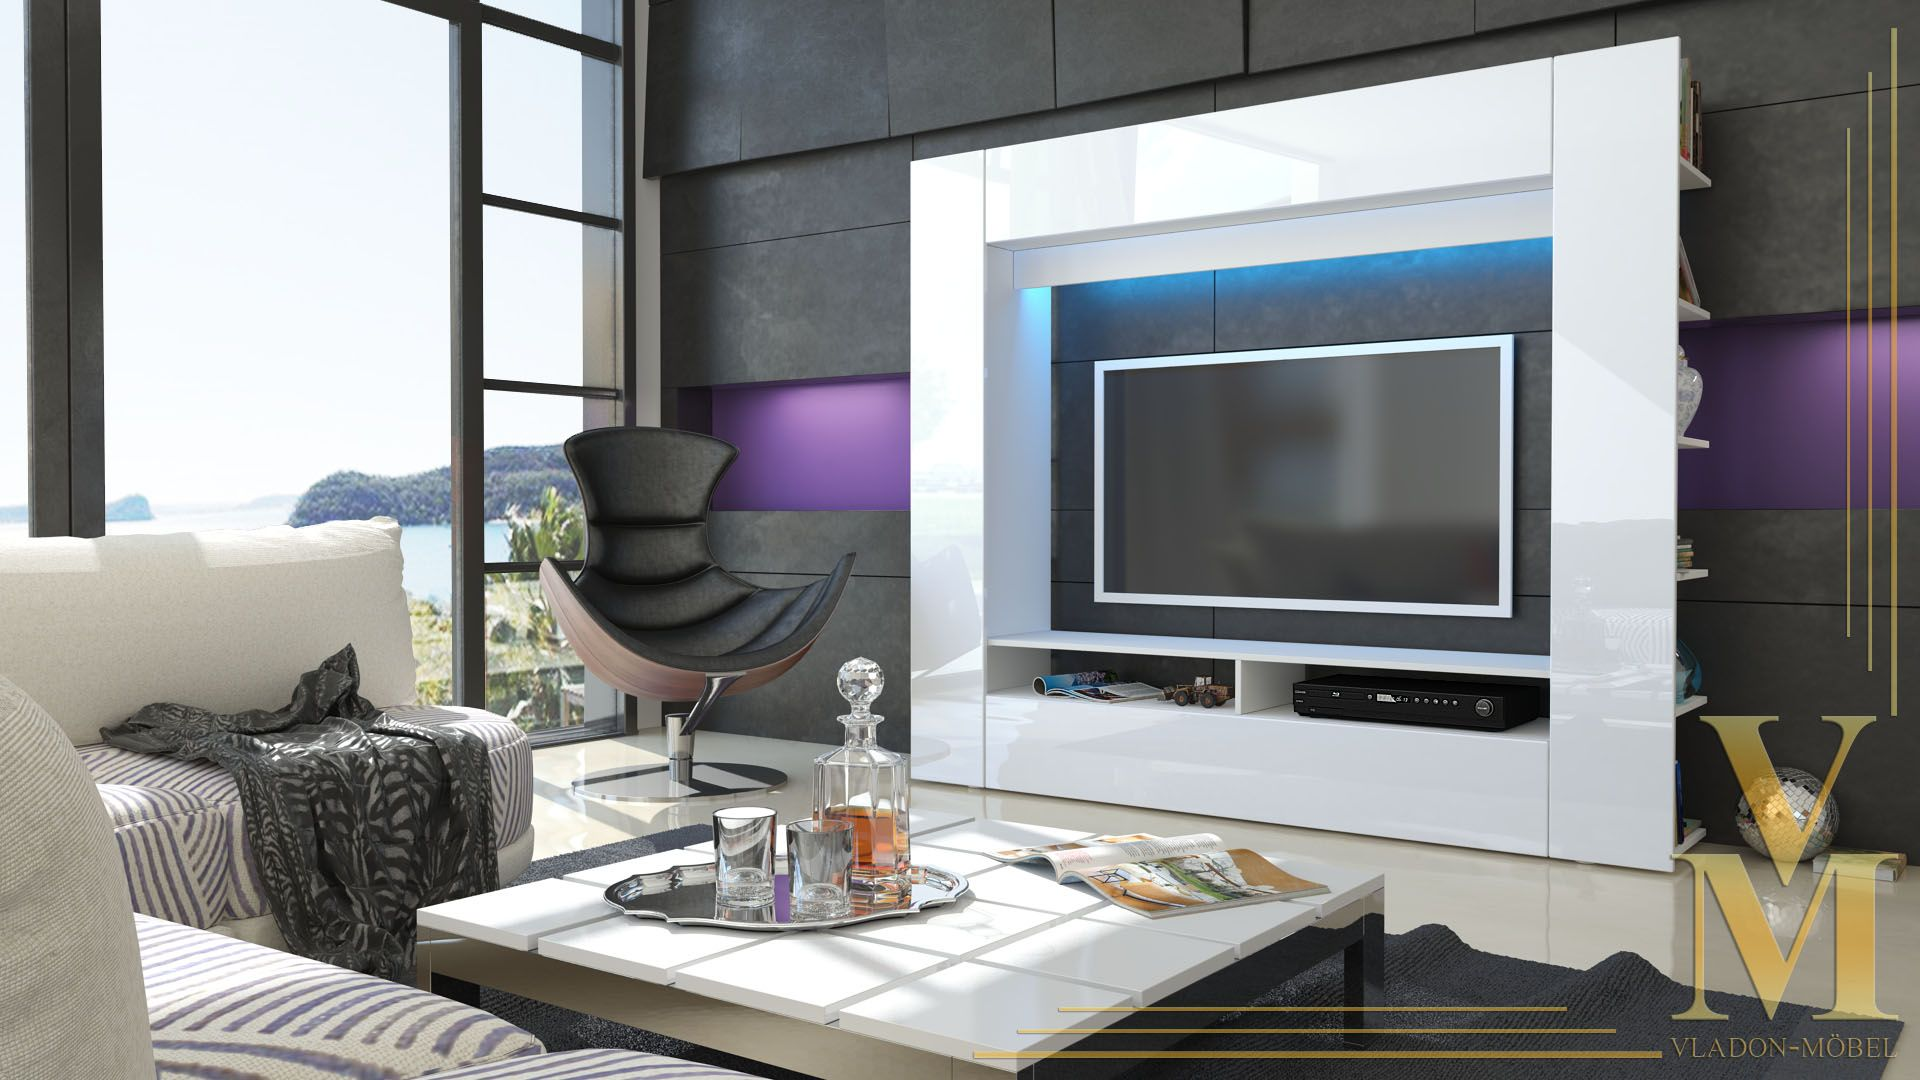 Details about wall unit tv stand living room furniture for Meuble tele a led